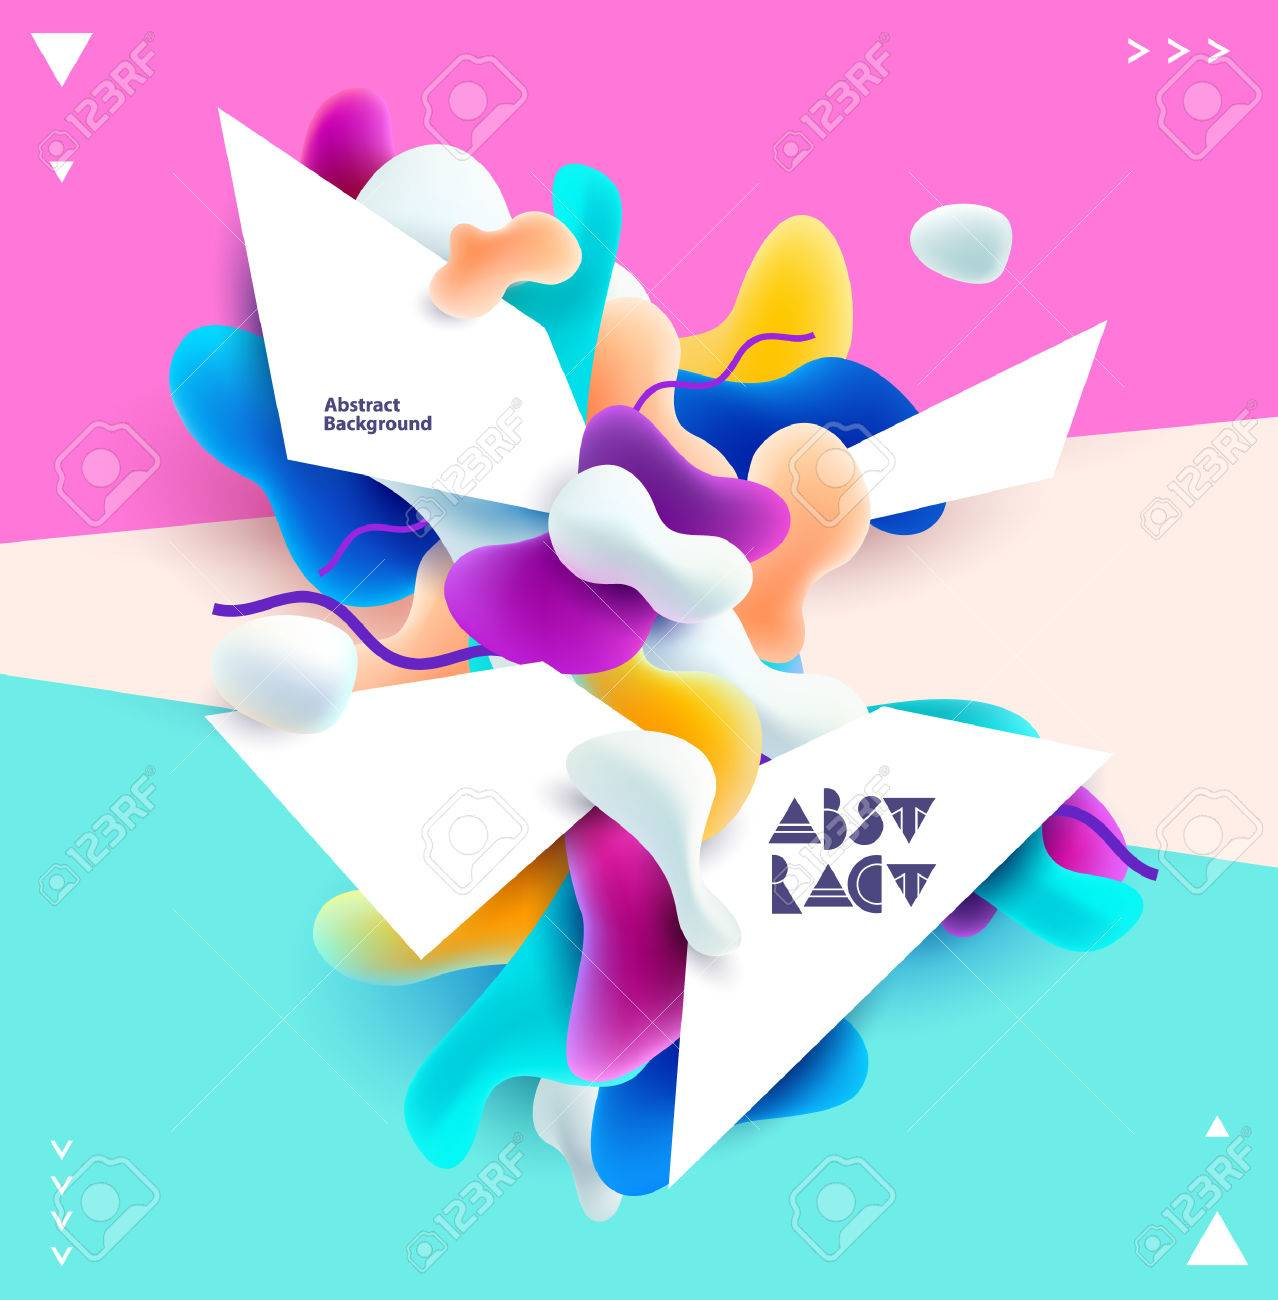 Abstract colorful poster. Plastic 3d shapes with space for text. - 73089804